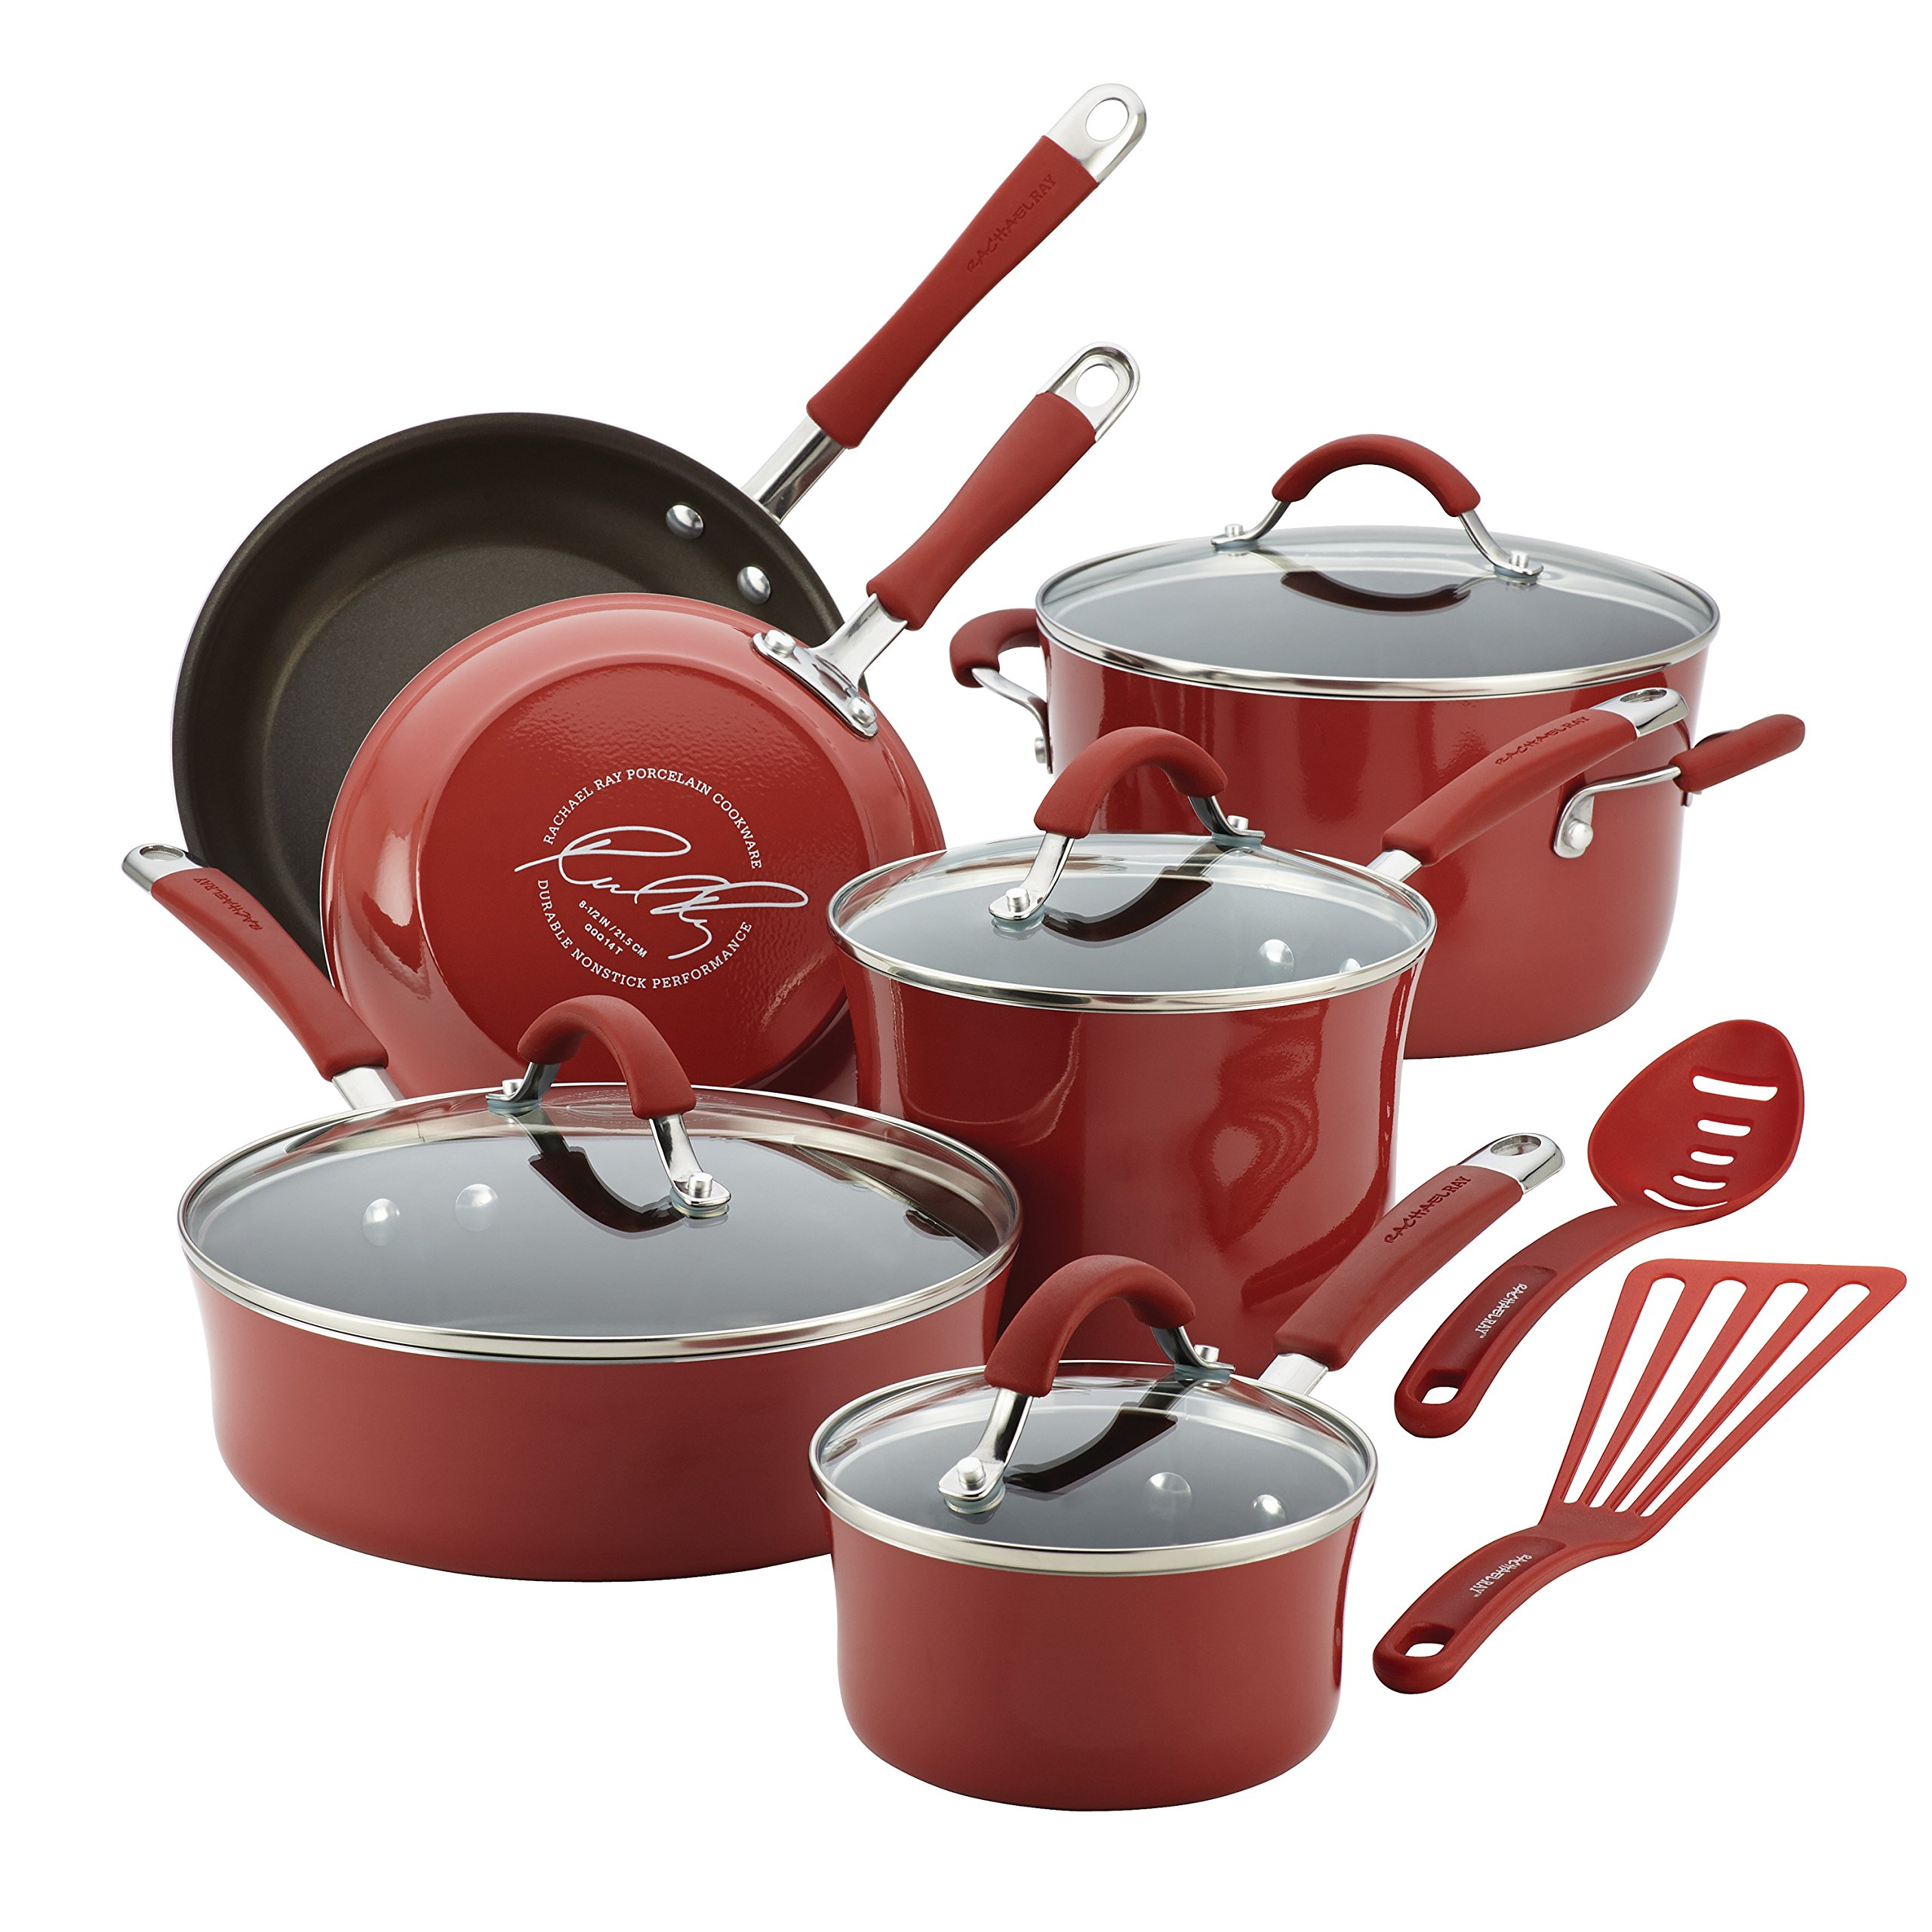 Rachael Ray Cucina Hard Porcelain Enamel Nonstick Cookware Set, 12-Piece, Cranberry Red by Rachael Ray